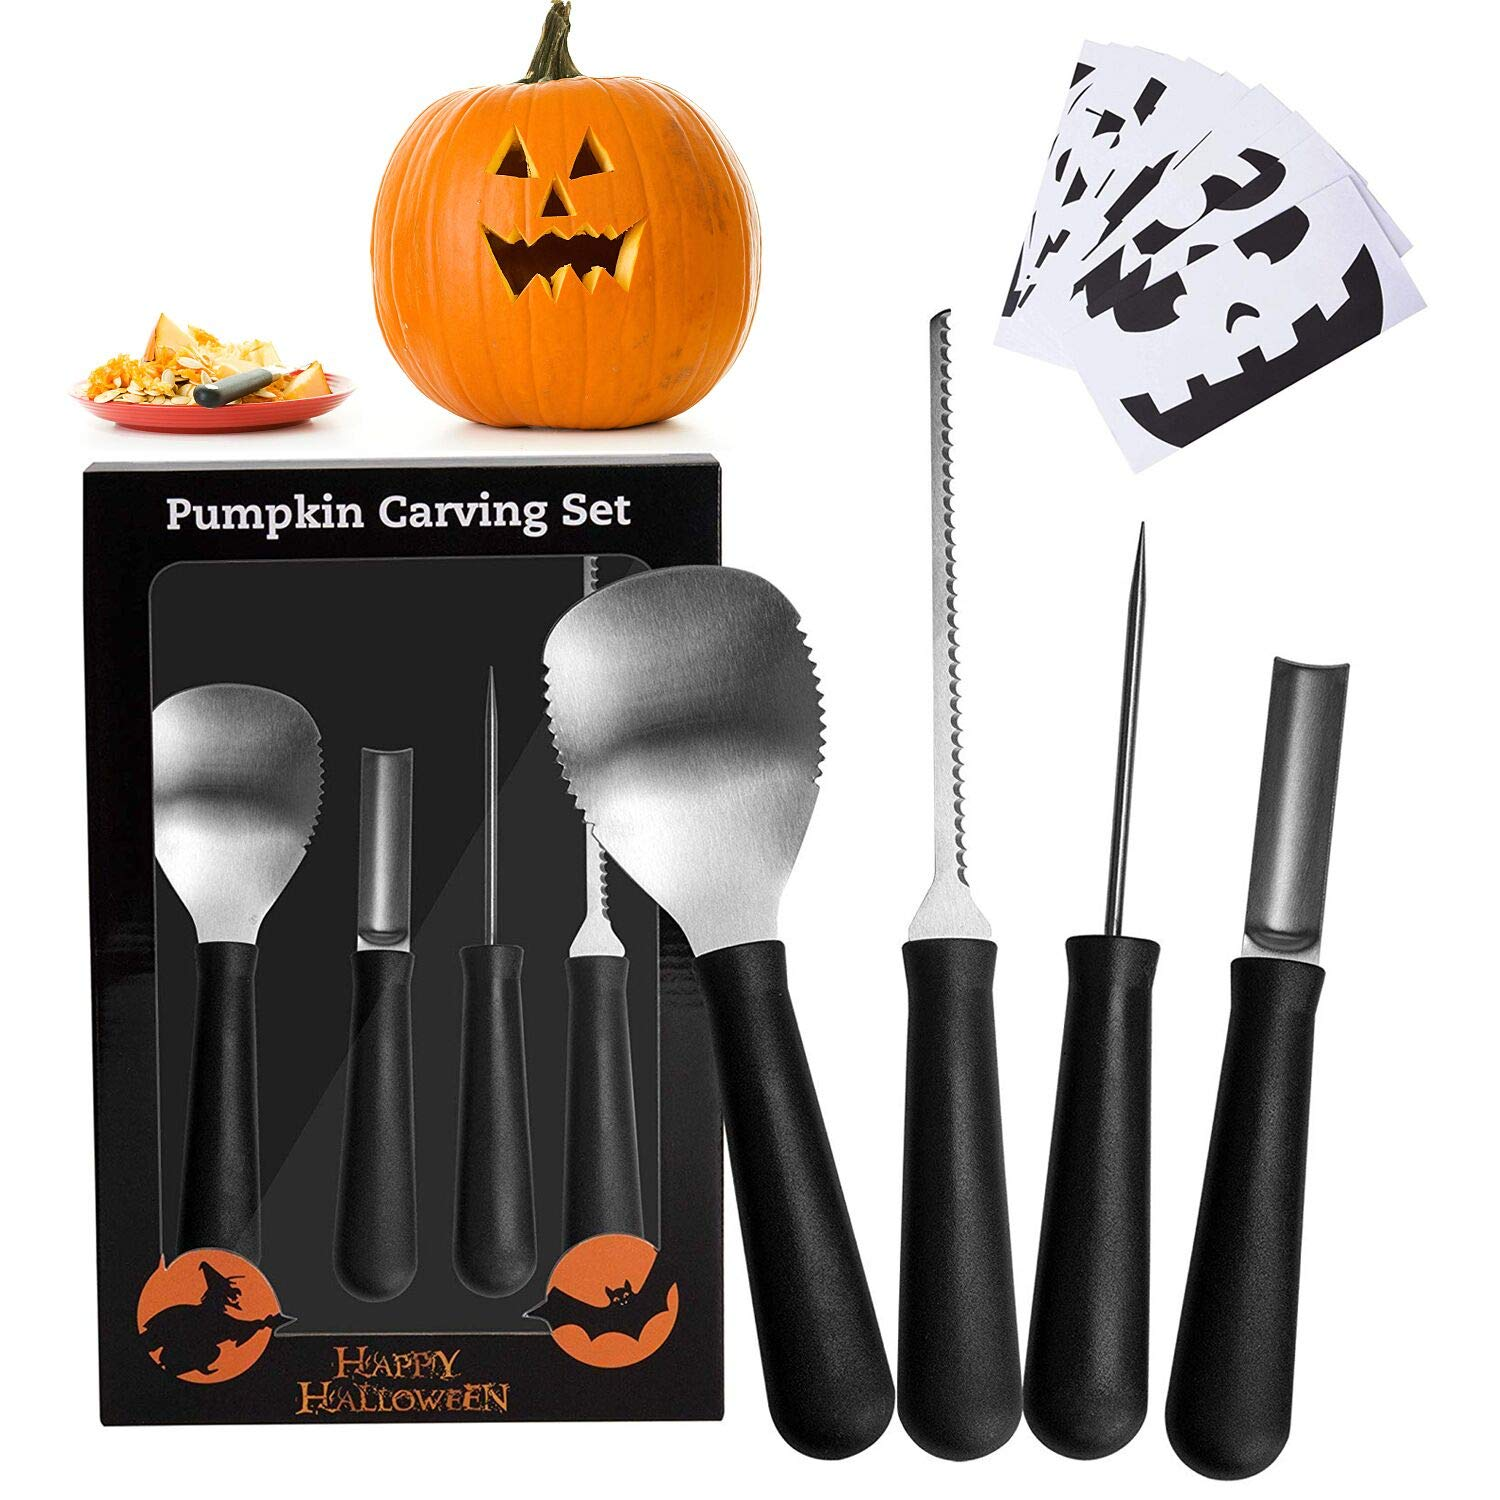 Pumpkin Carving Kit,Spoons, Knives, Professional Heavy Duty Stainless Steel Pumpkin Carving Tools Set for Kids and Adults, Easily Carve Sculpt Halloween Lantern Sculpting Set 10 Carving Stencils HEV016WOOL